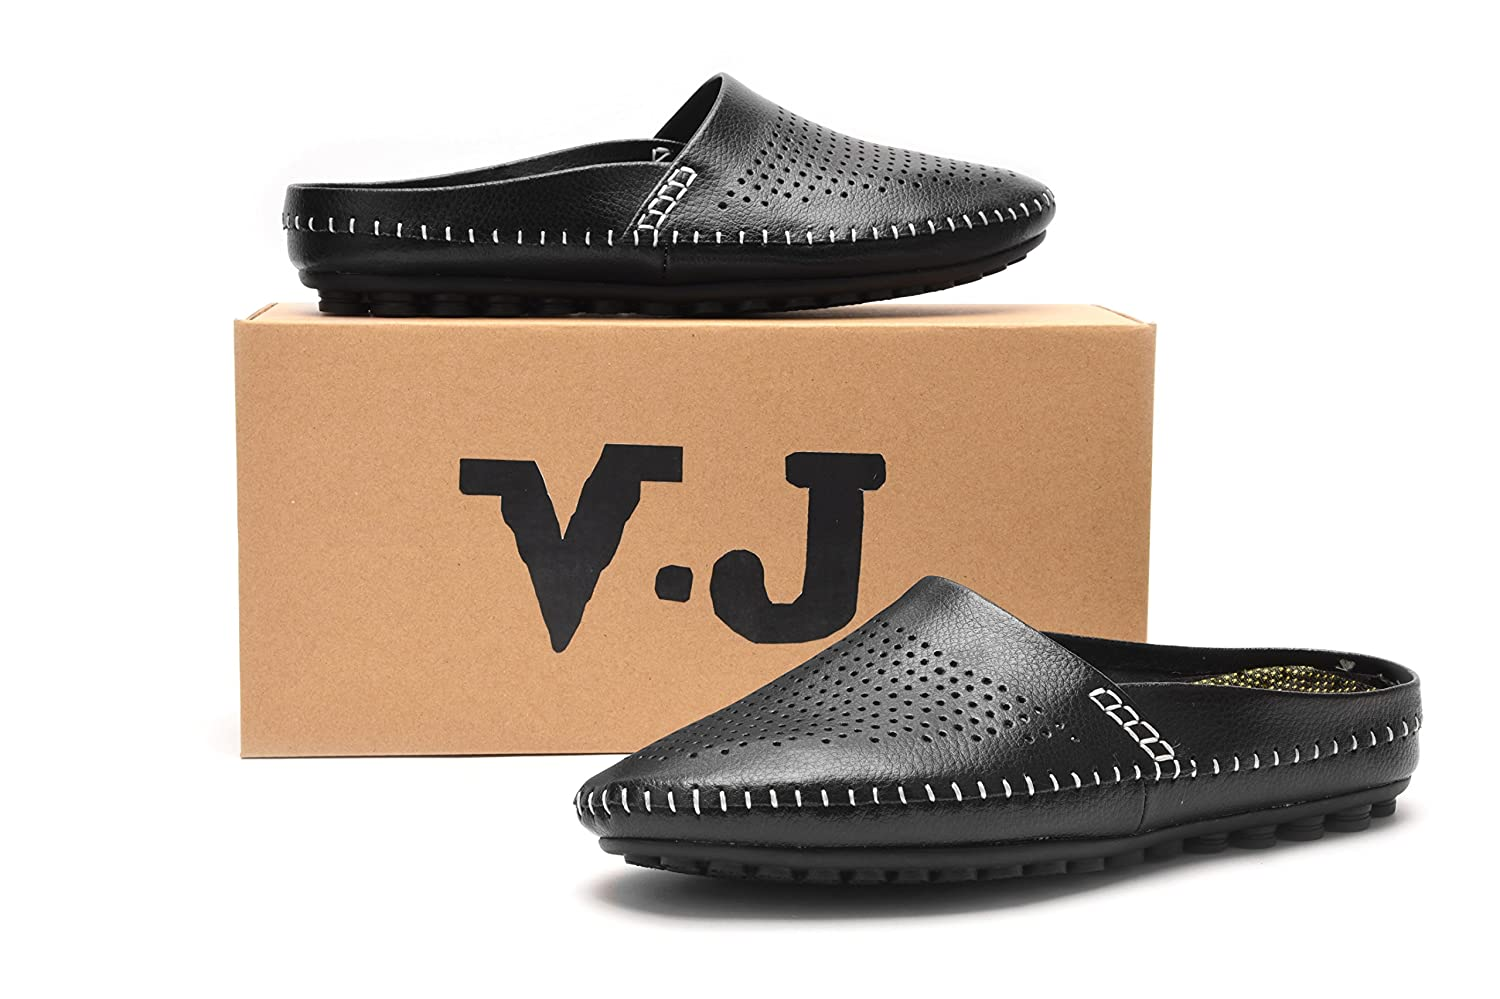 367a3747573342 Amazon.com | V.J Men's Classic Handsewn Genuine Leather House Slippers  Office Slippers Casual Breathable Sandals | Sport Sandals & Slides